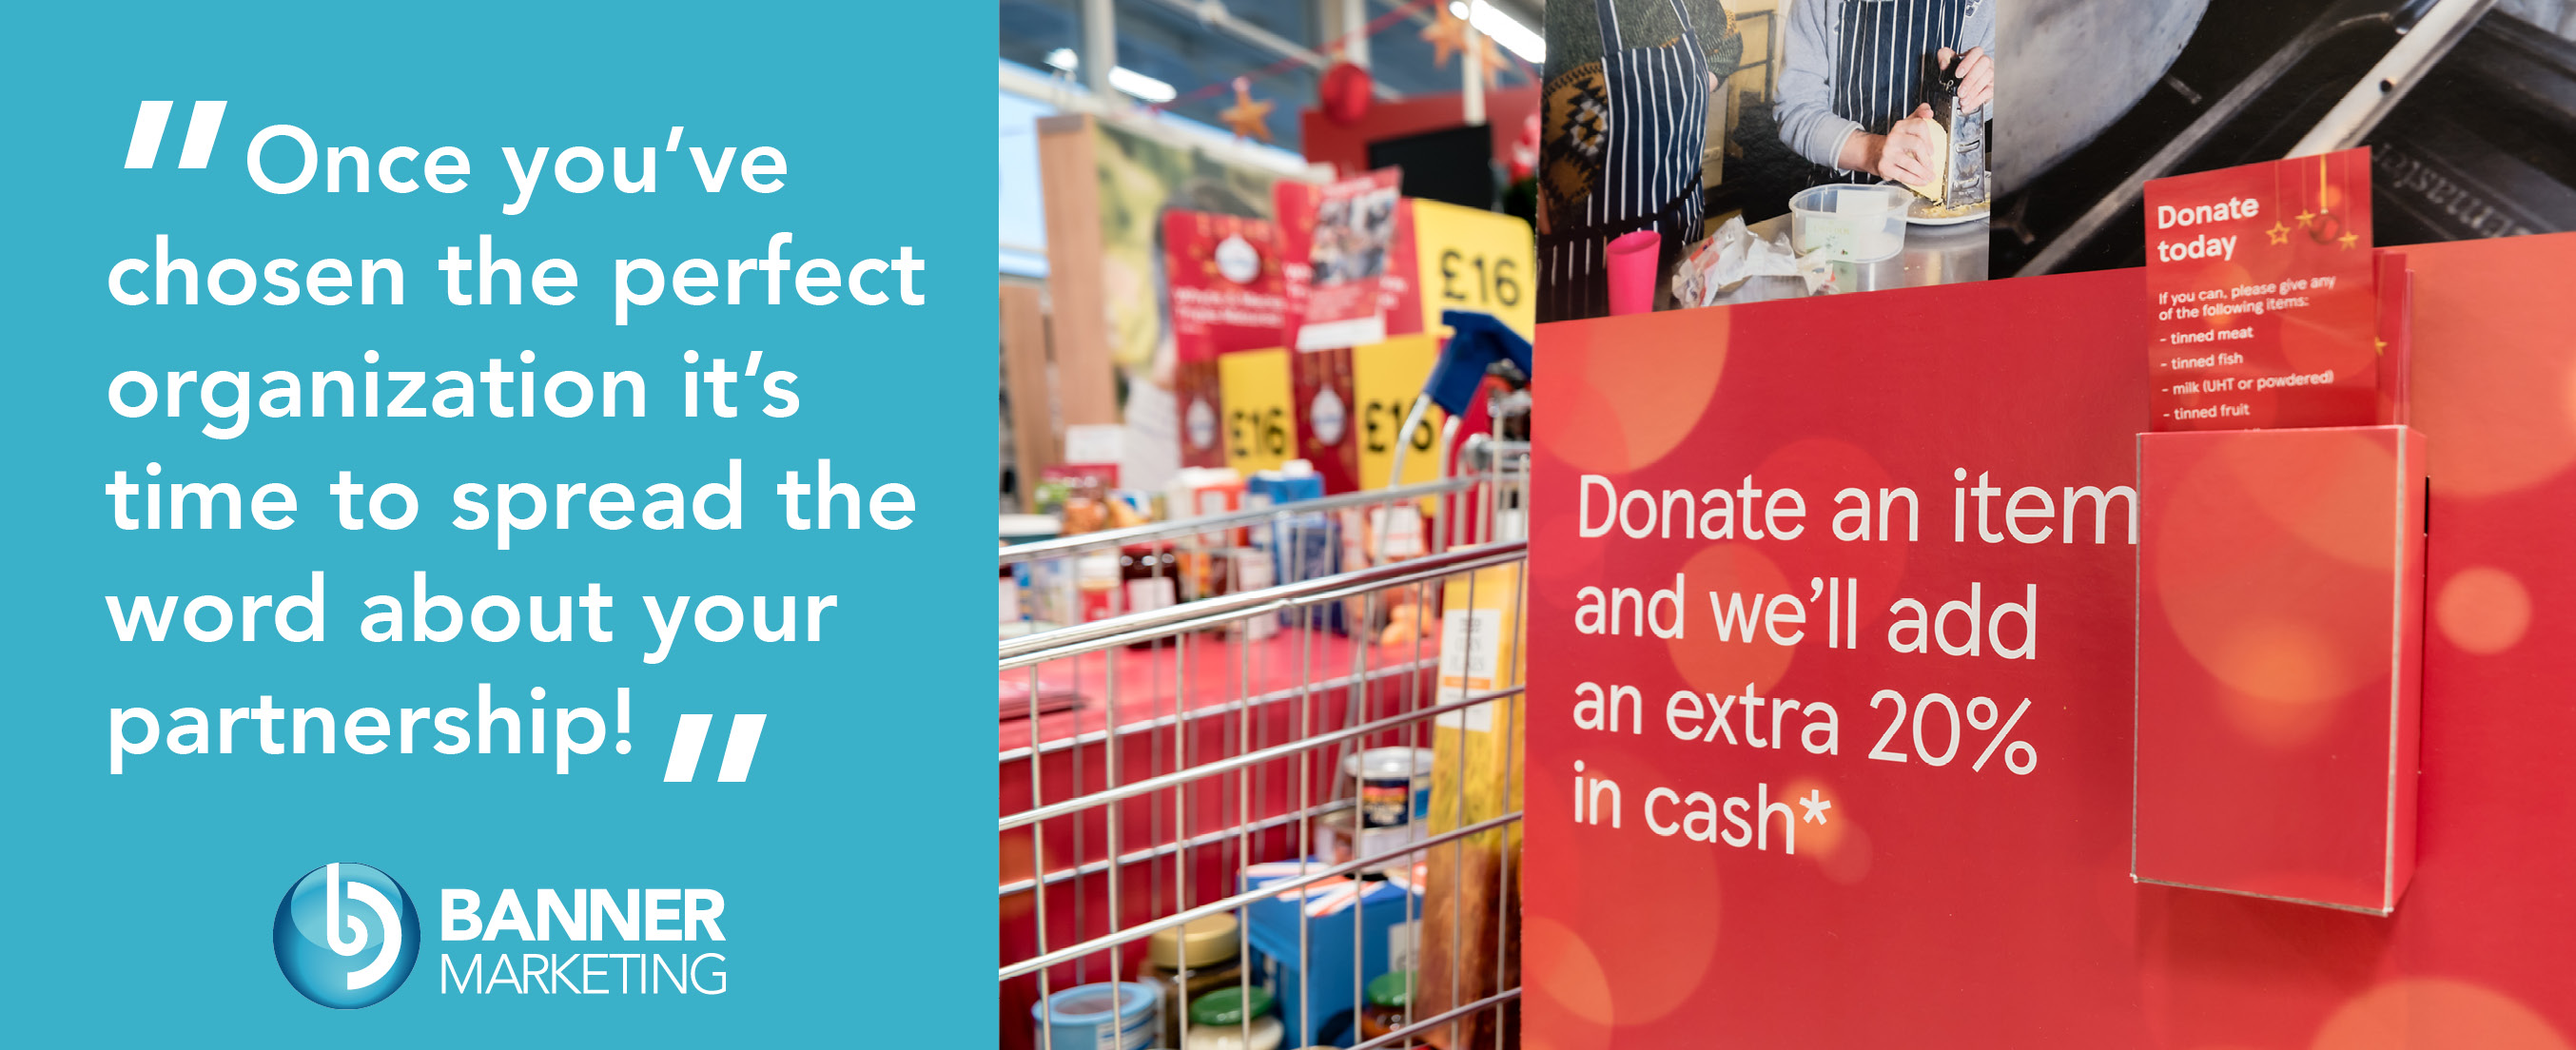 Promotional signage in a store telling people to donate an item and the store will add an extra 20% in cash to the donation